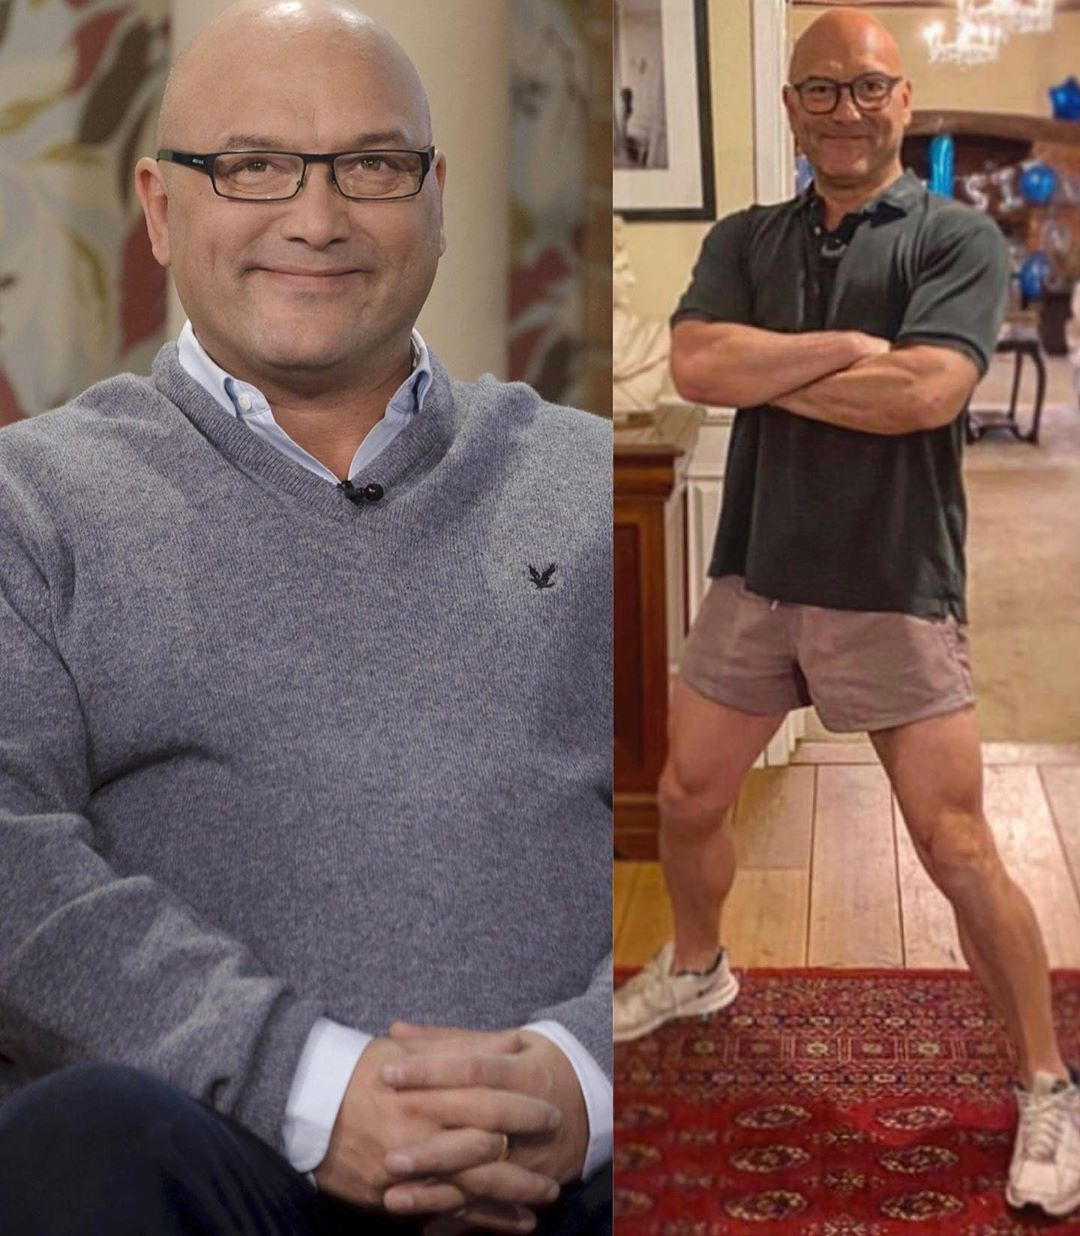 Gregg showed off his incredible four stone weight loss